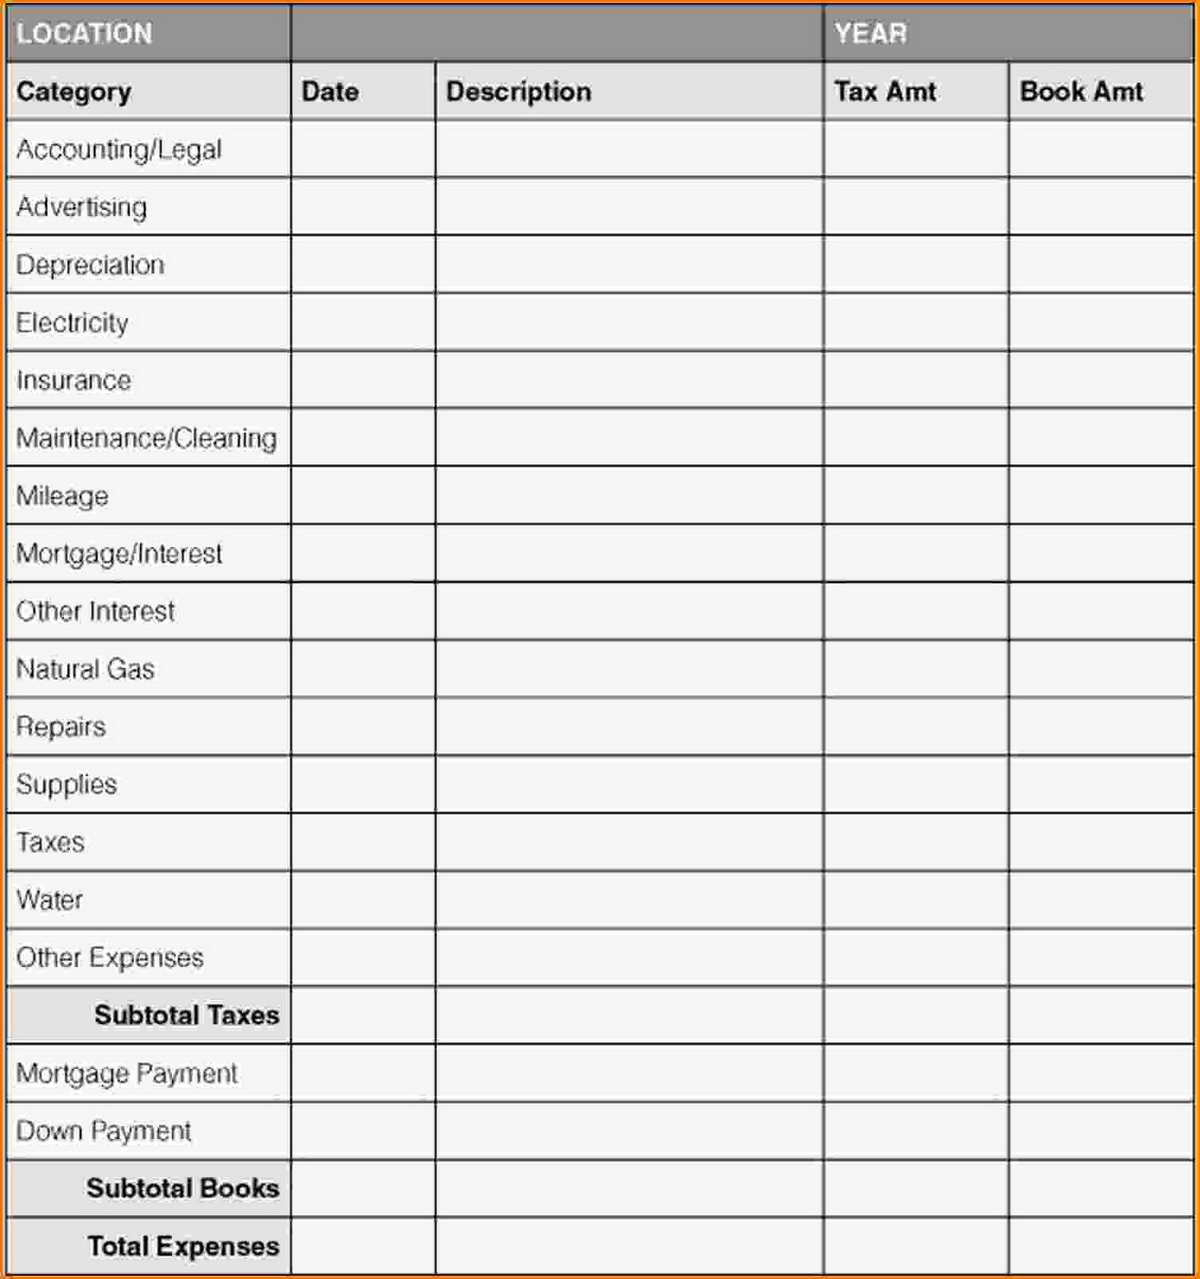 Business Expense Tracking Spreadsheet With Small Business Expenses Inside Expense Tracking Spreadsheet Template